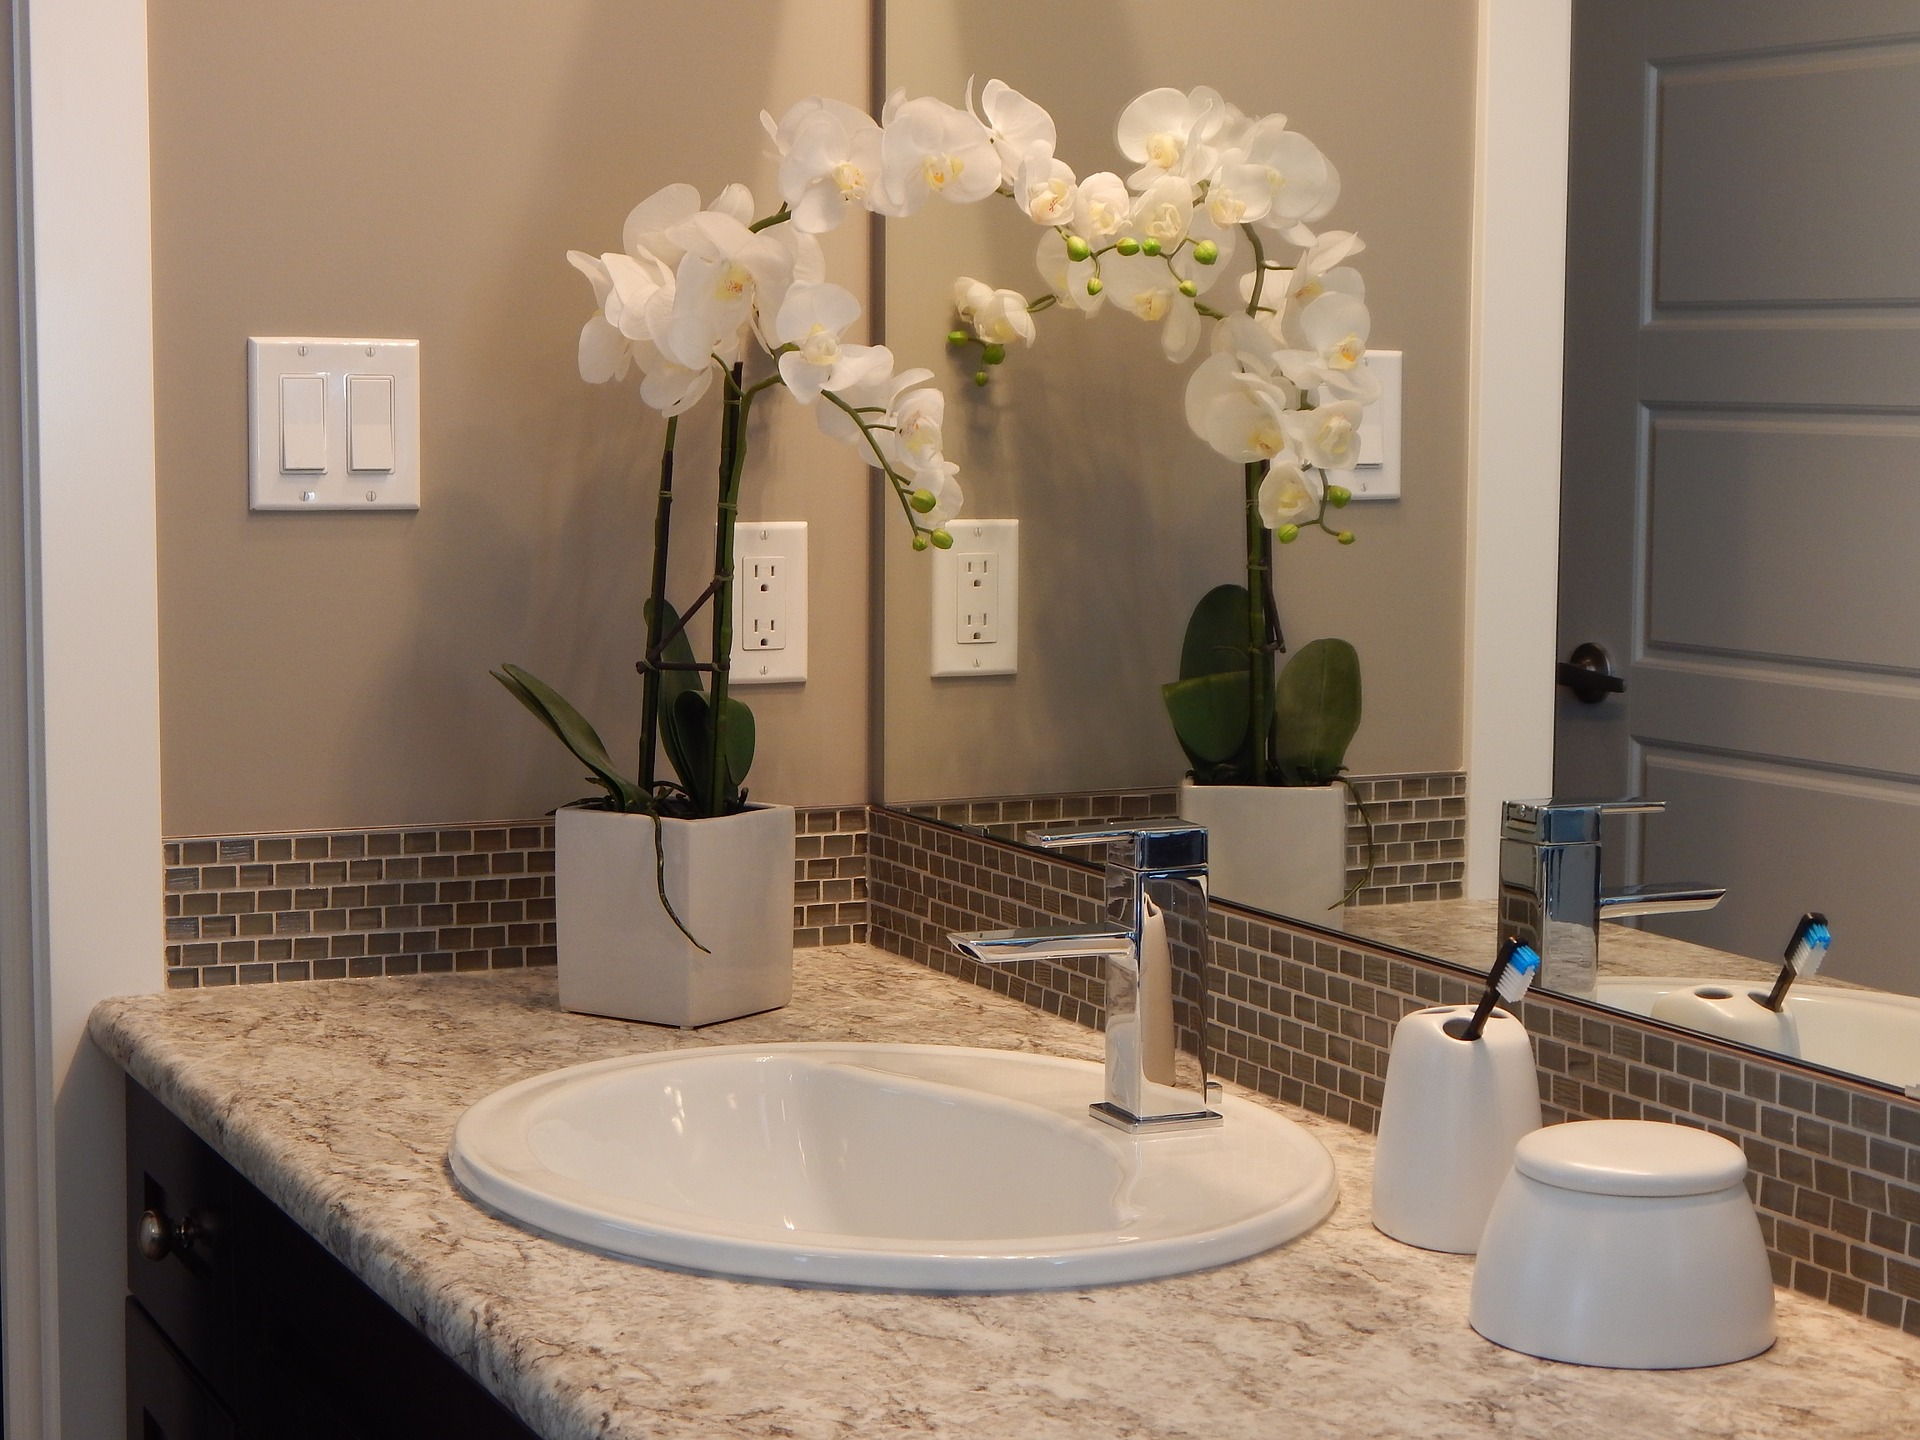 Keep your mirrors sparkling by cleaning with vinegar and water.